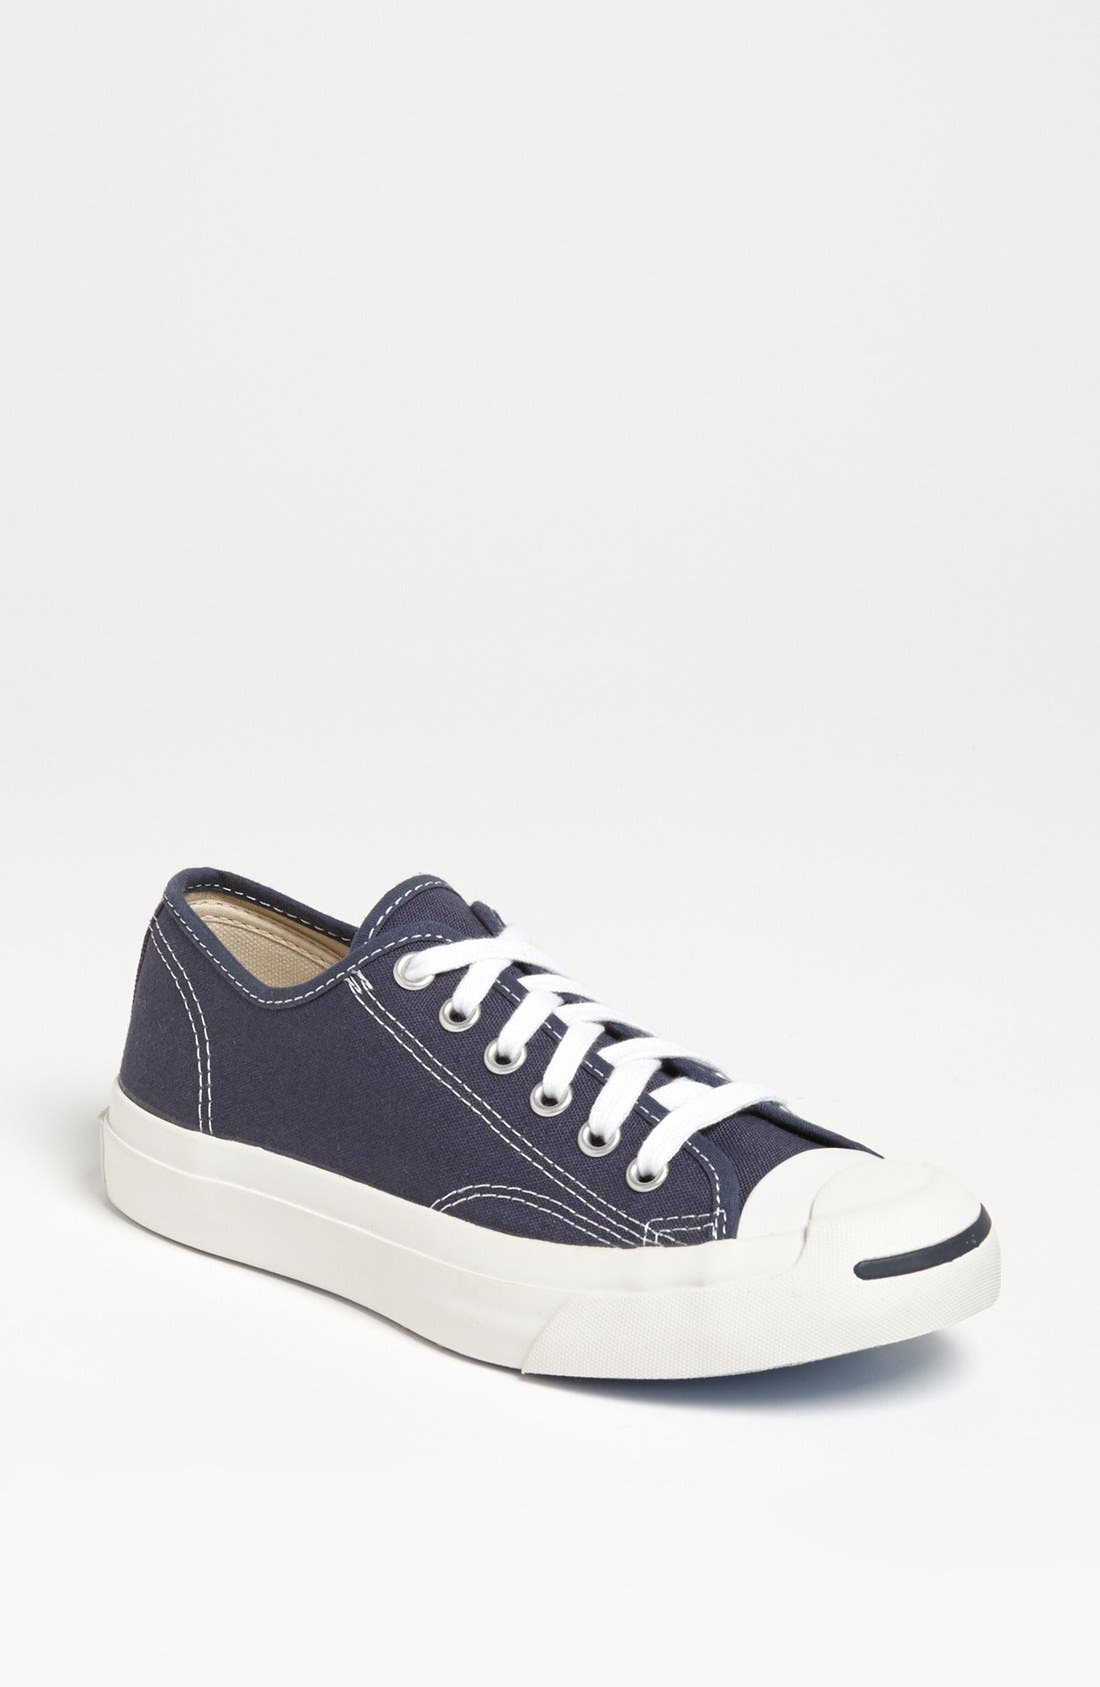 'Jack Purcell' Sneaker,                         Main,                         color,